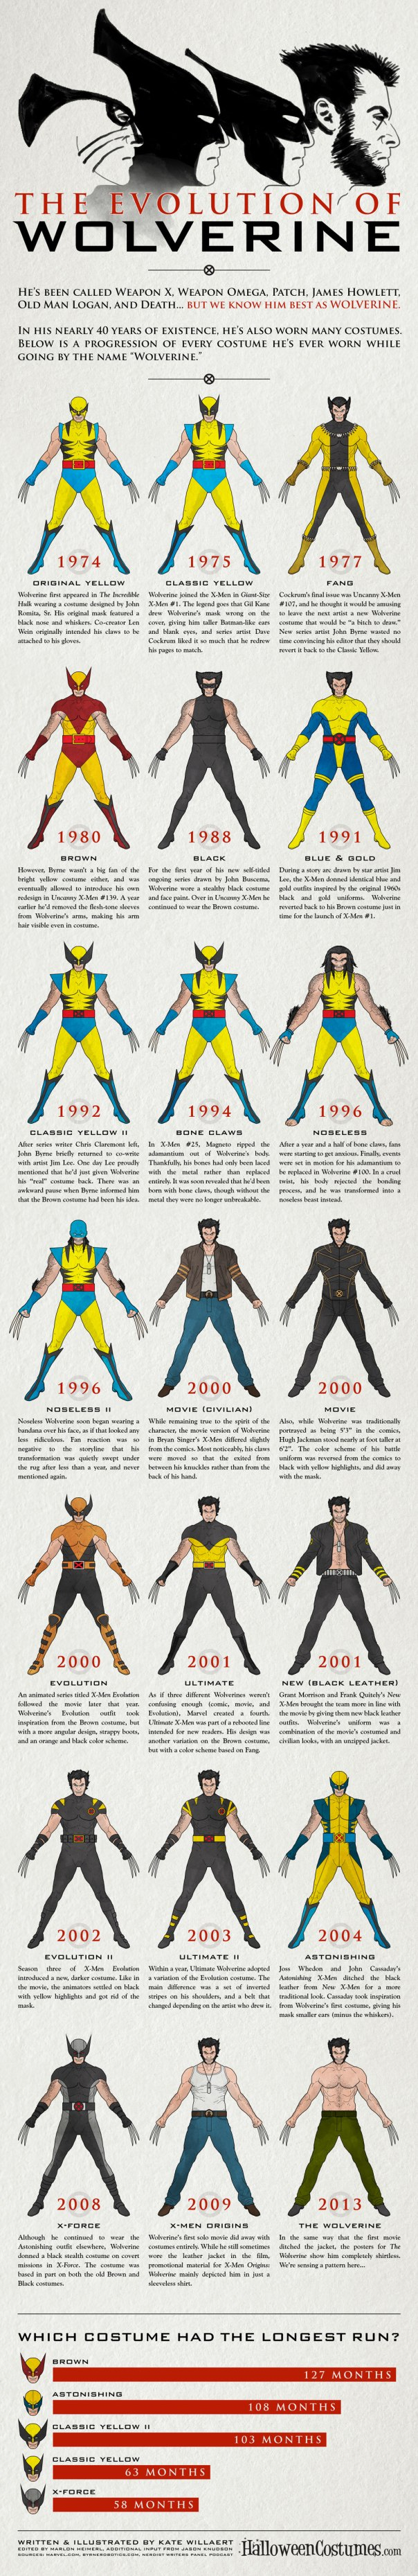 wolverine-costume-infographic